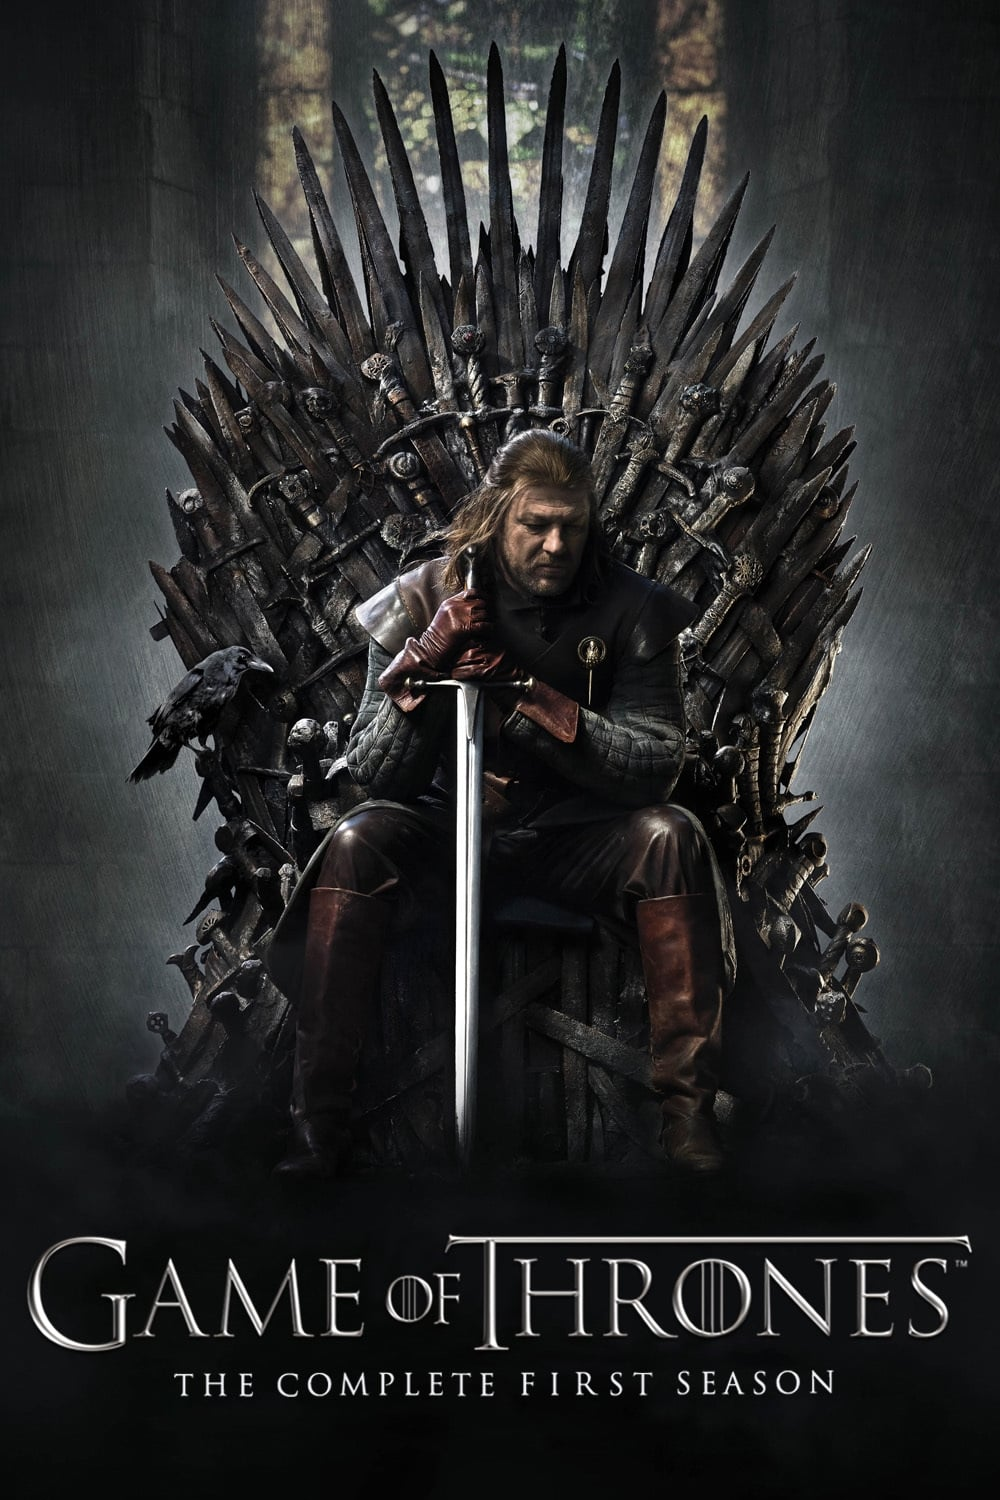 http://tinbongda24h.com/game-of-thrones-1a-temporada-2011-bdrip-bluray-720p-torrent-dual-audio/